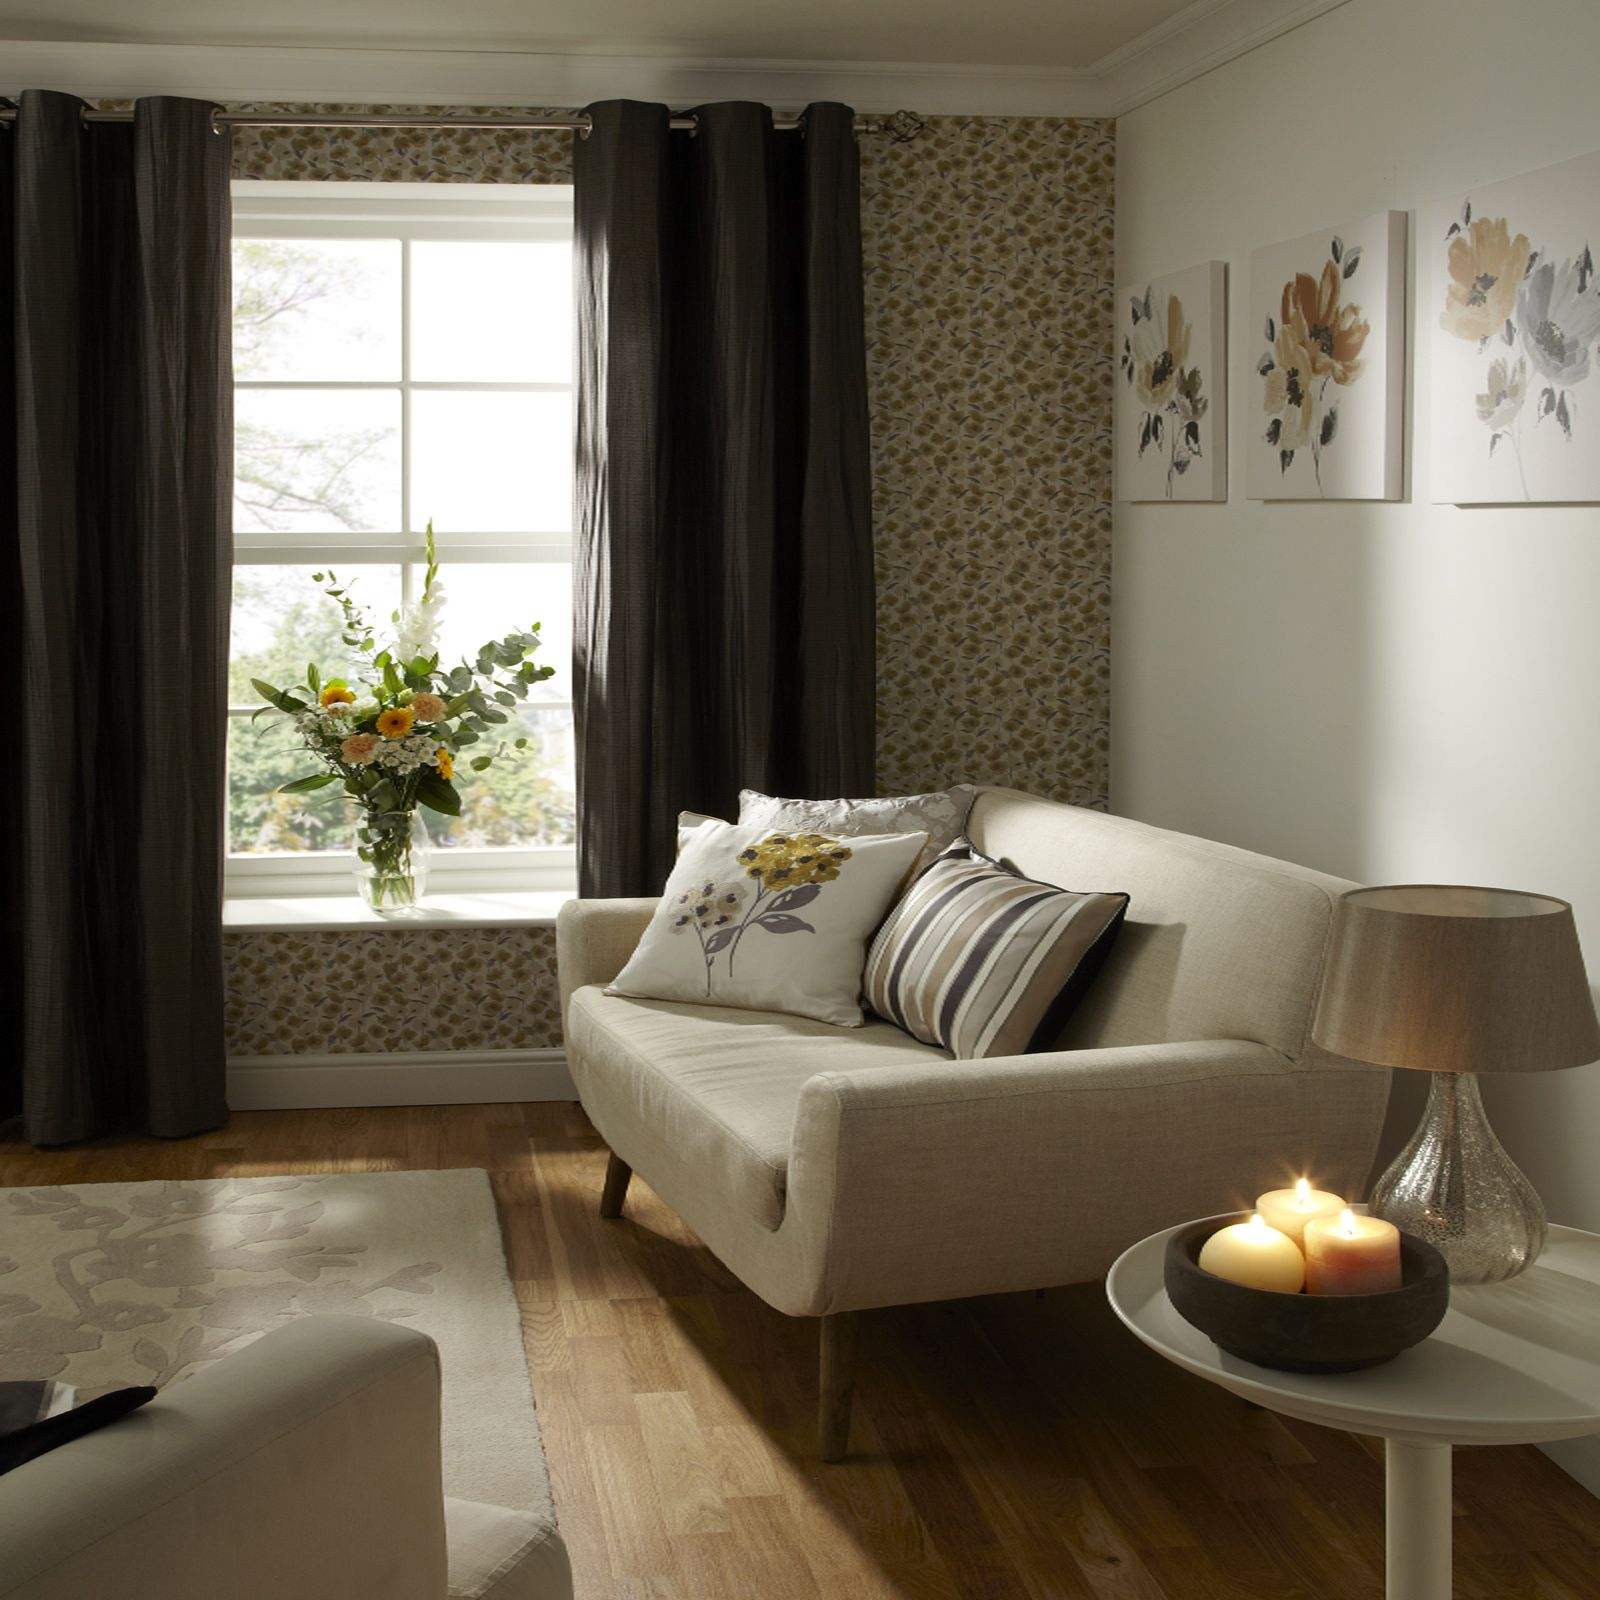 Simple Living Room: Wallpaper, Curtains, Cushions